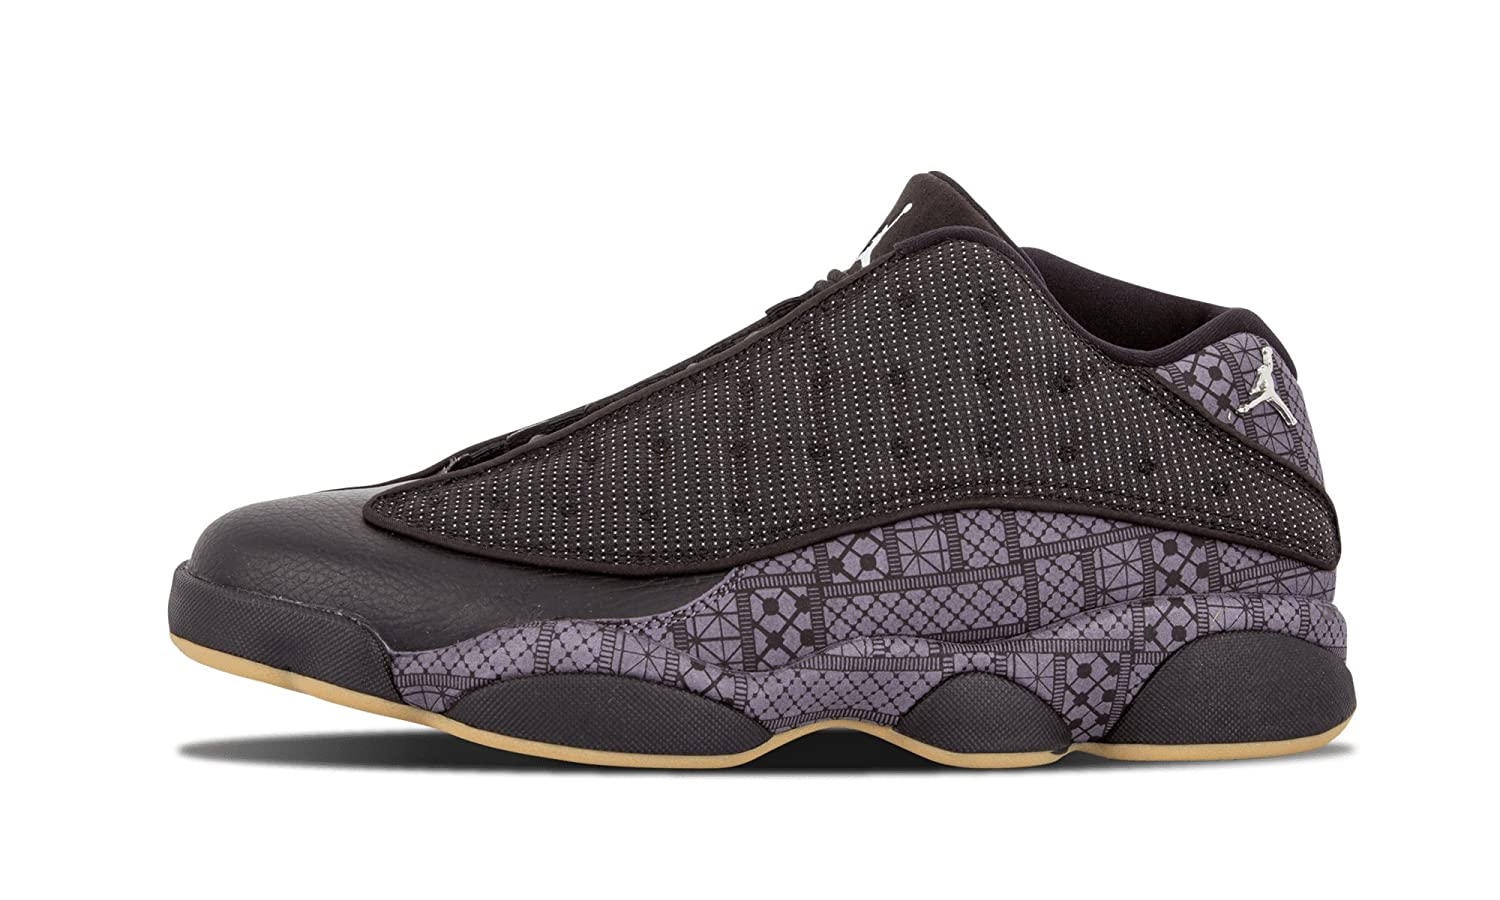 sneakers for cheap arrives new collection Amazon.com | Air Jordan 13 Retro Low Q54 - 8.5